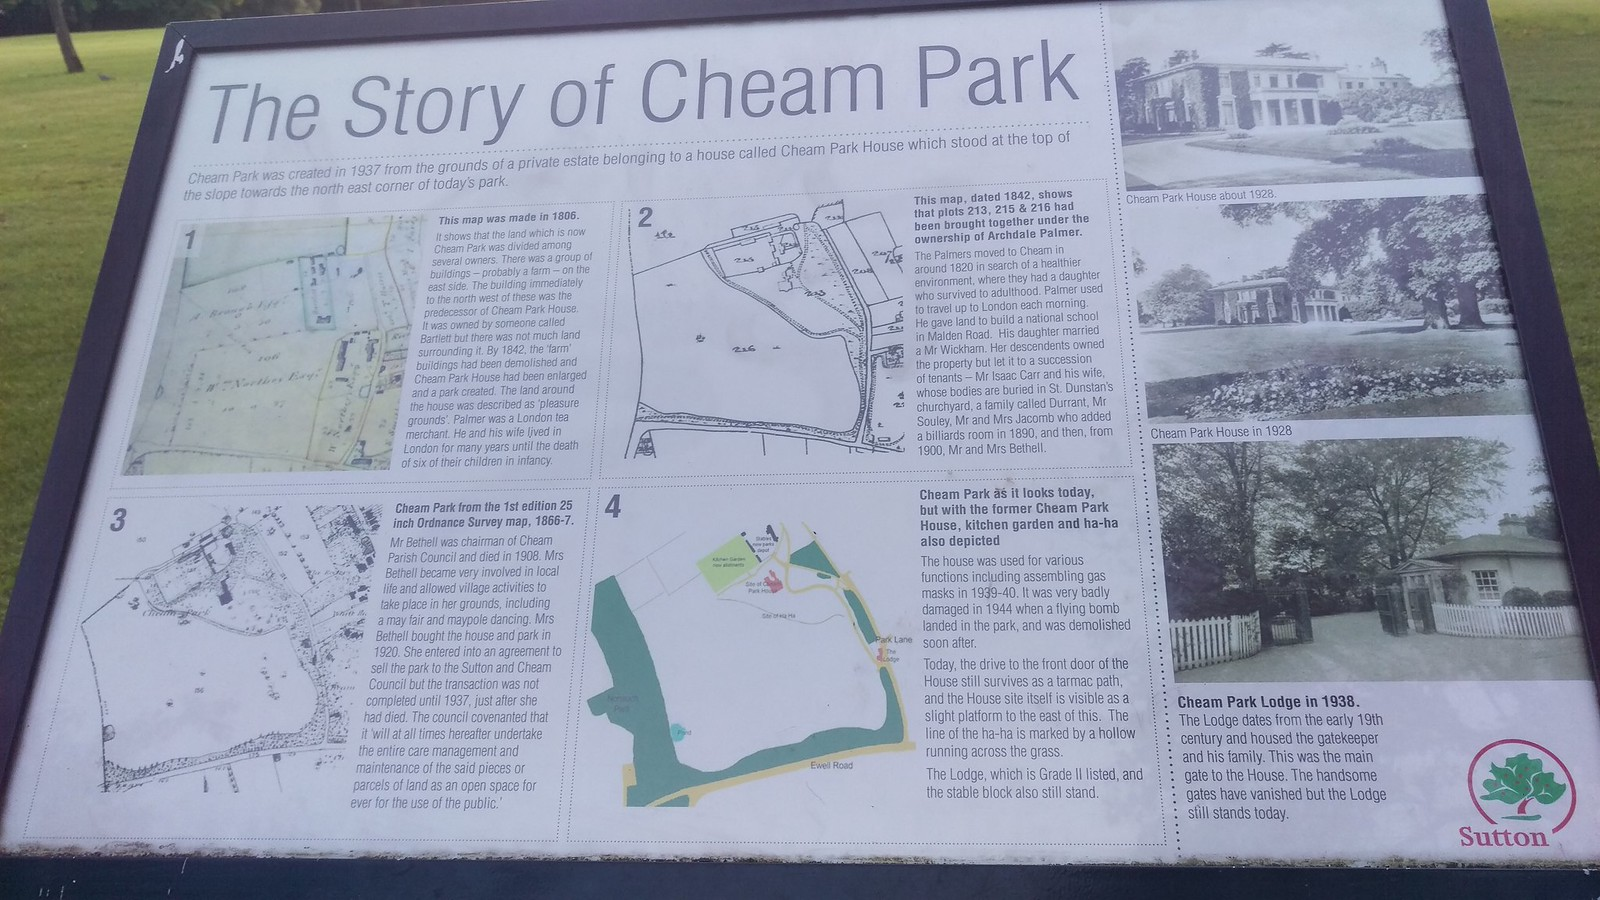 Story of Cheam Park